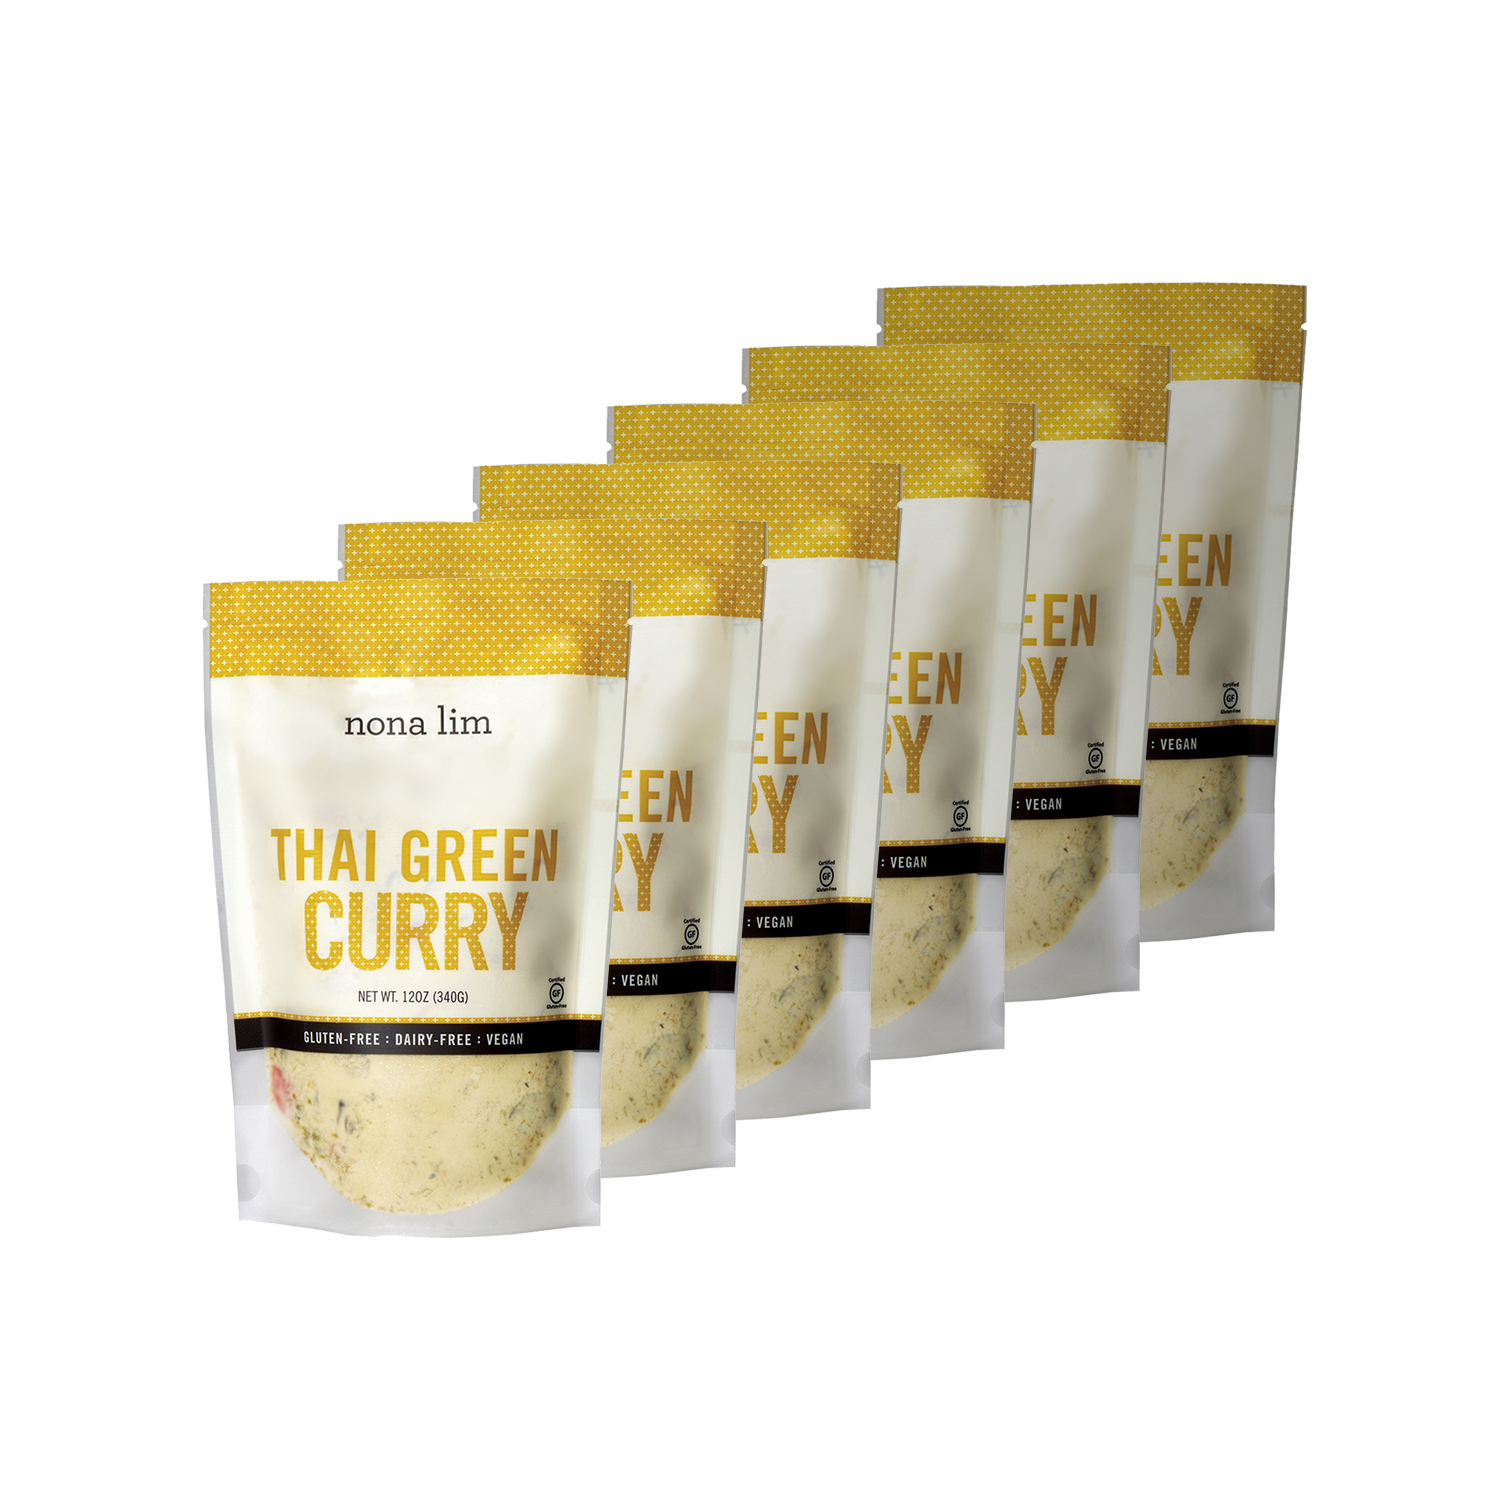 Nona Lim Thai Green Curry Soup 6 Pouches